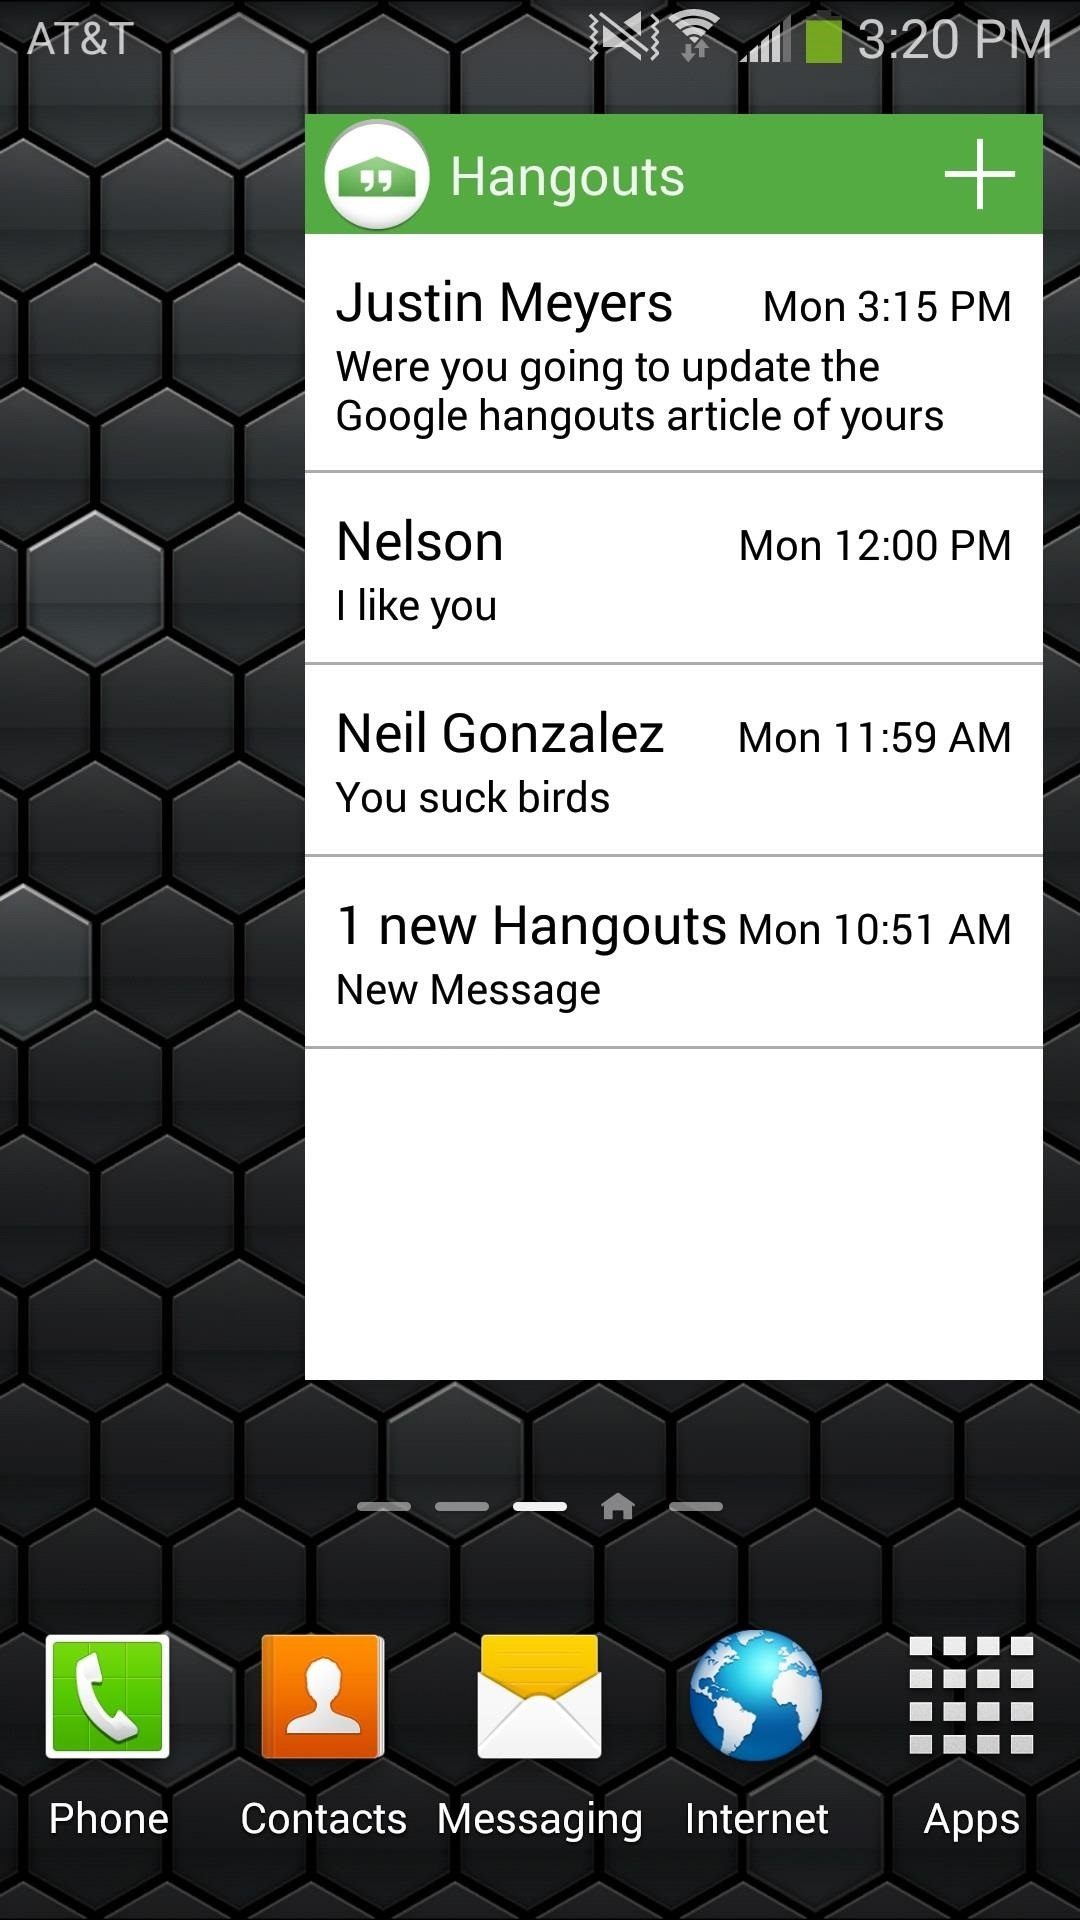 How to Preview New Google Hangout Messages from the Home Screen on Your Galaxy Note 3